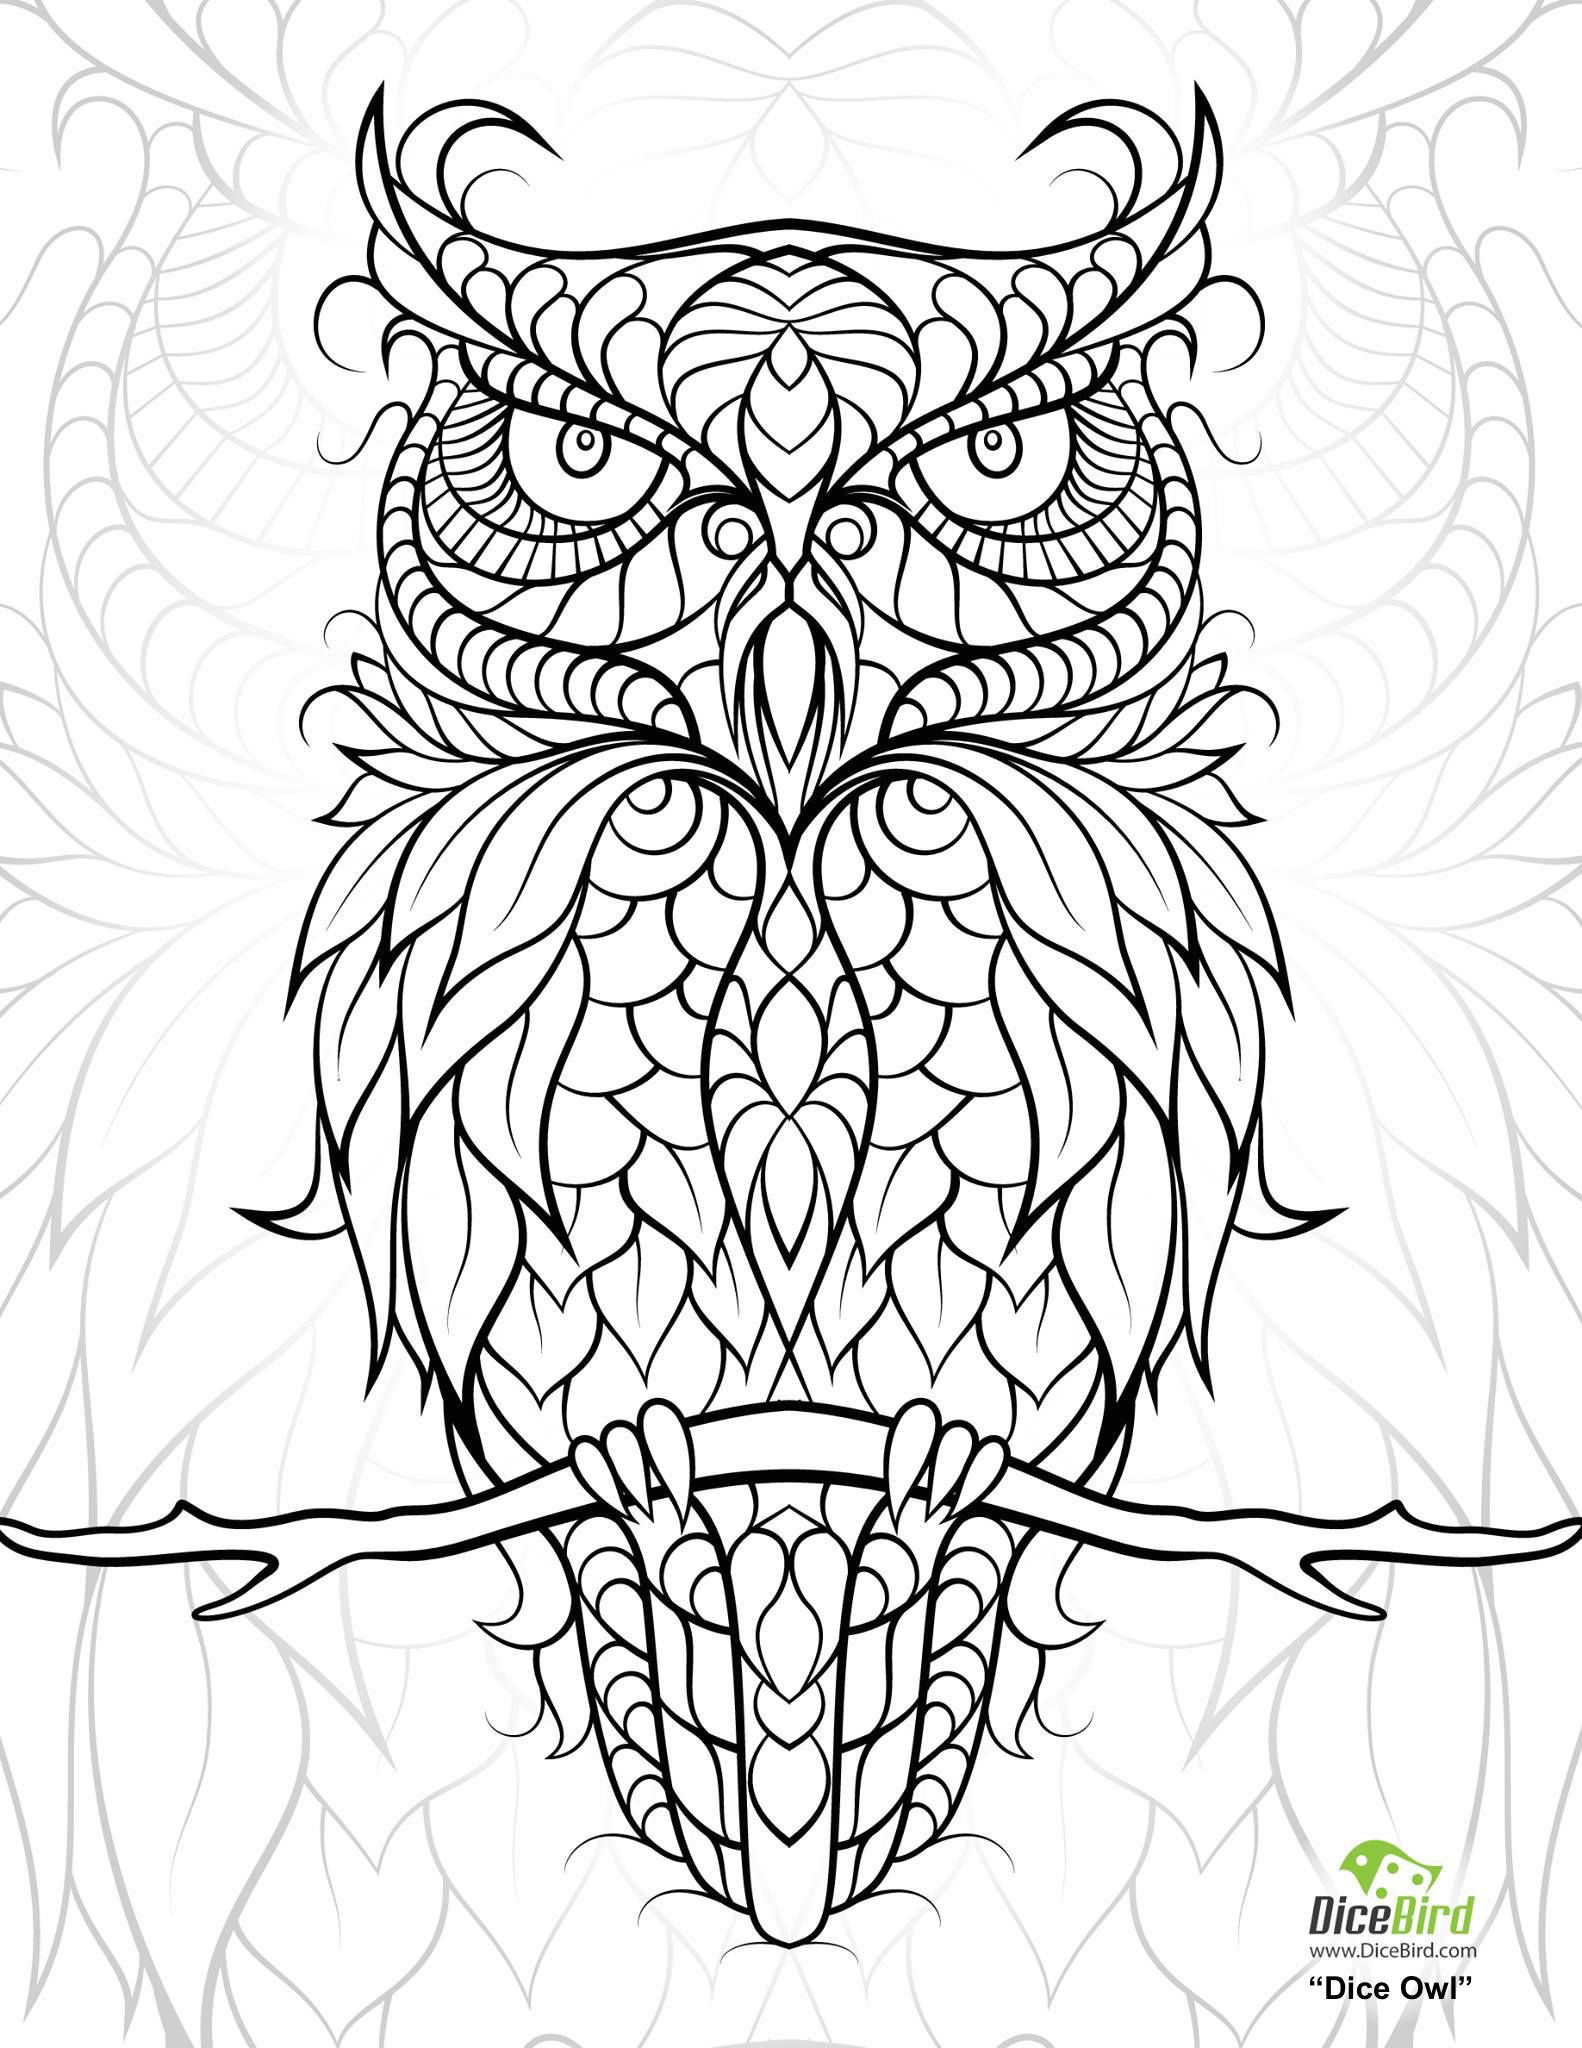 best animal colouring books diceowl free printable adult coloring pages owl coloring books best animal colouring